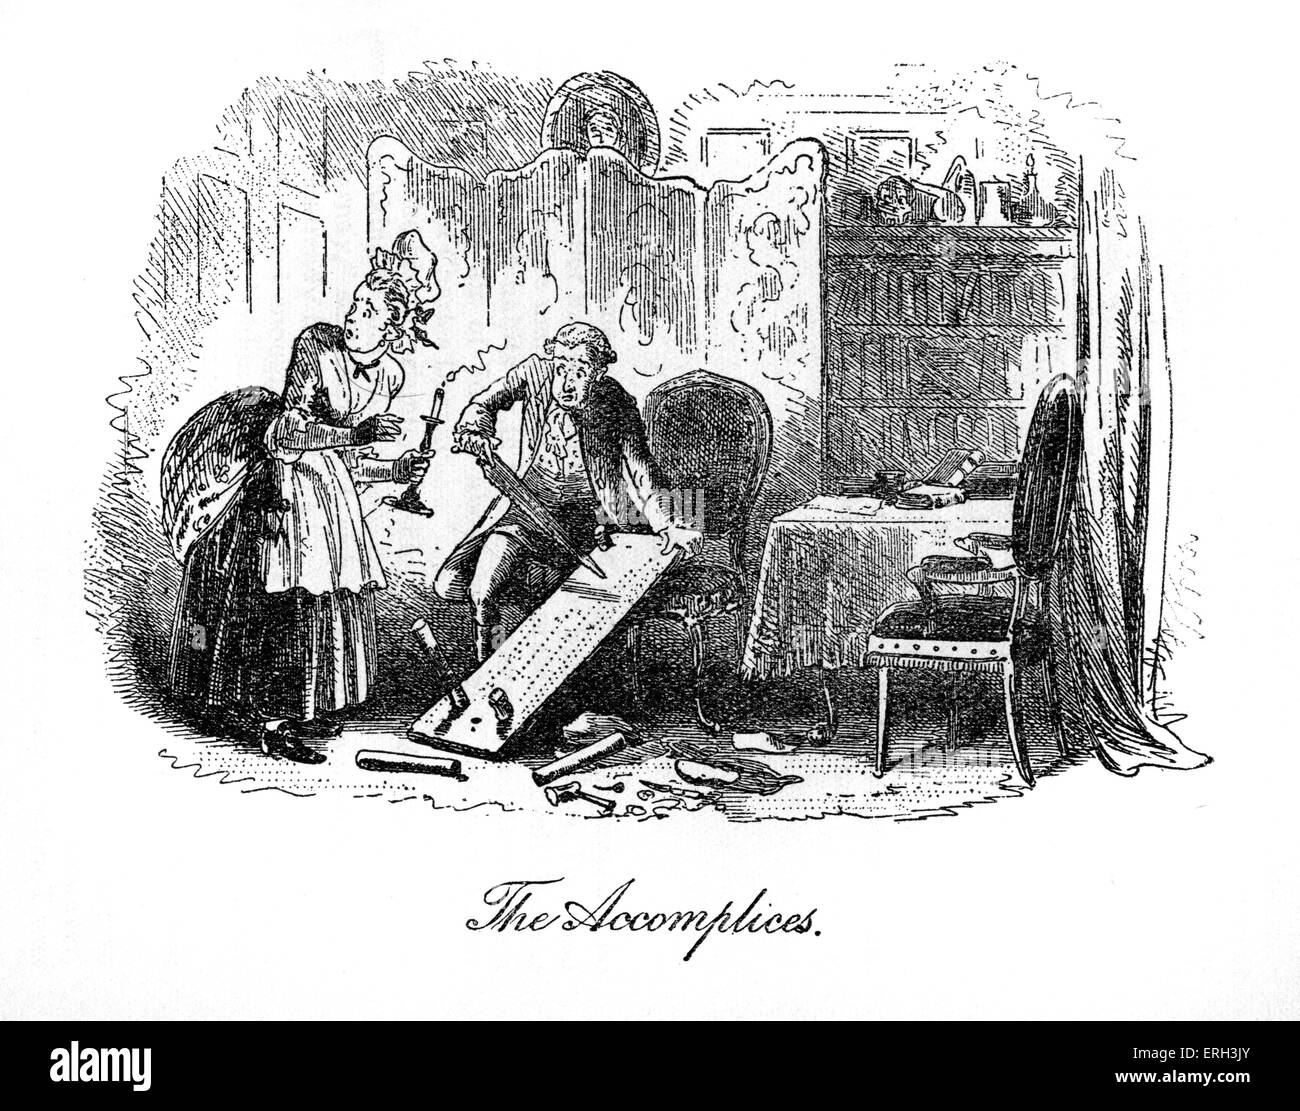 A Tale of Two Cities by Charles Dickens, published in 1859. Illustration by Hablot K. Browne (Phiz), 1815 - 1882. - Stock Image